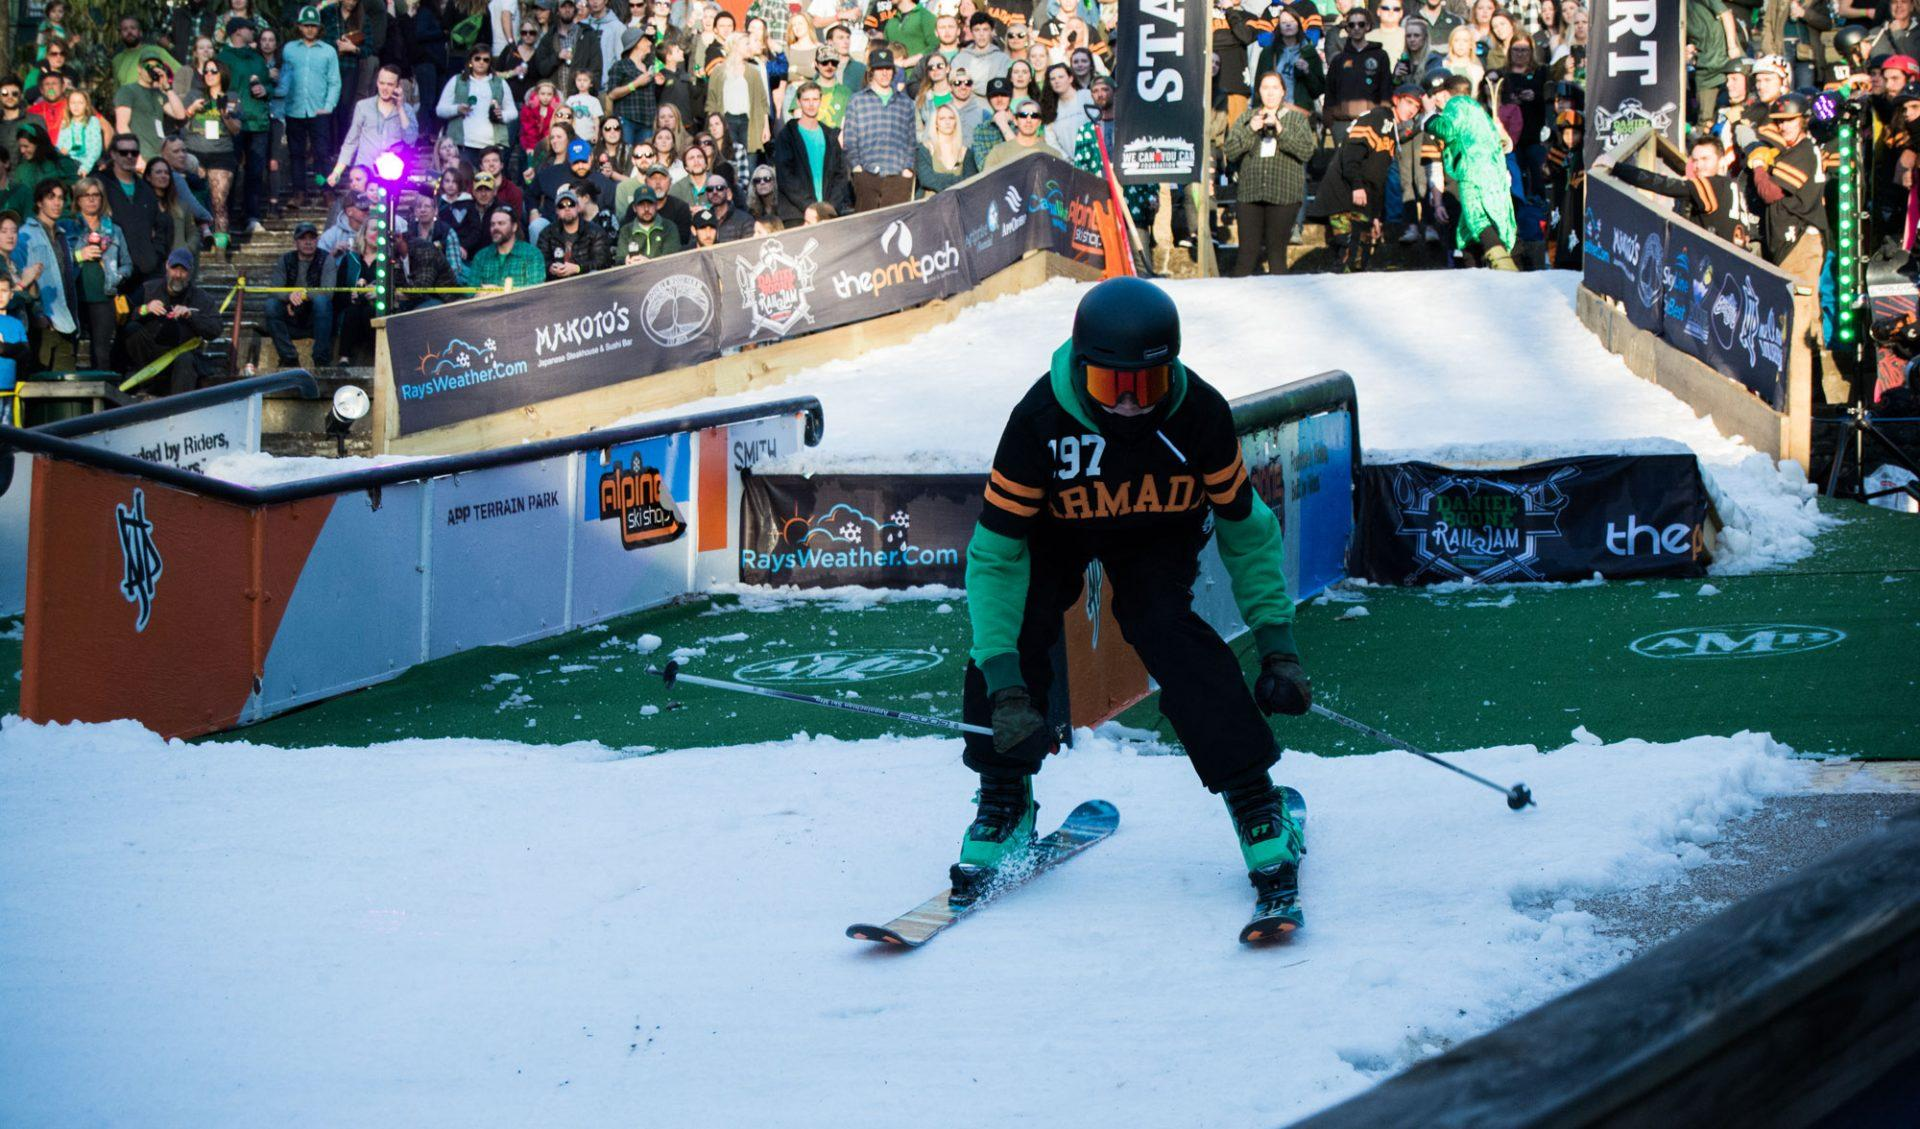 A skier zooms down the slope after landing their grind at Rail Jam on St. Patrick's Day.